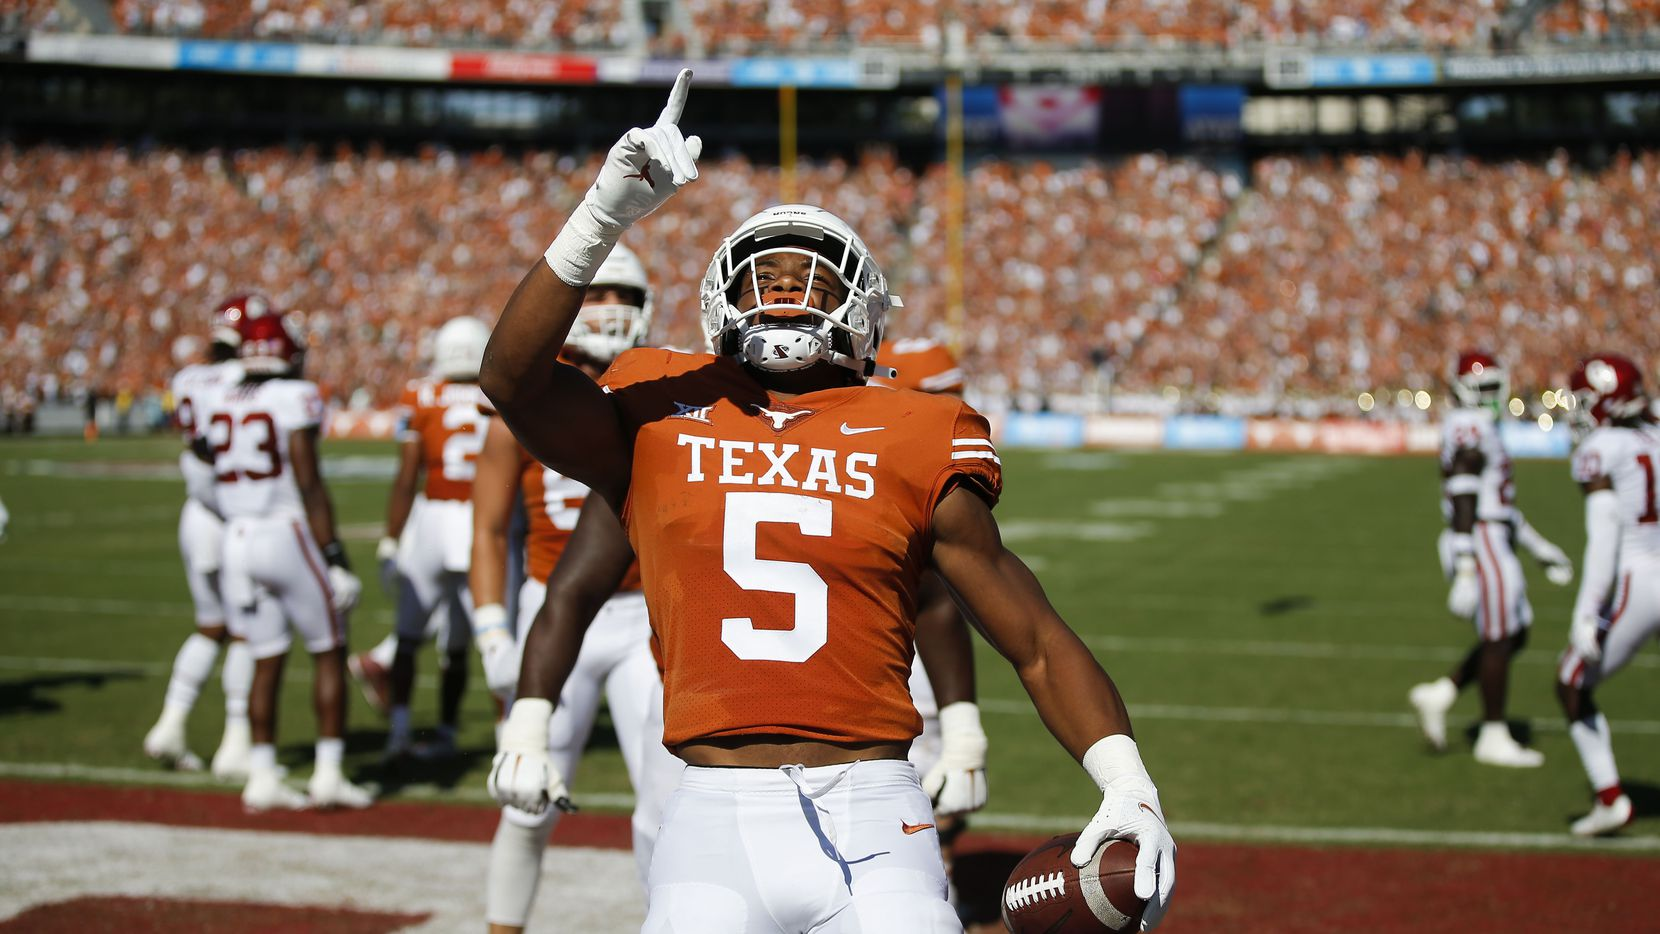 Texas running back Bijan Robinson (5) celebrates scoring a touchdown during the first half of an NCAA college football game against Oklahoma at the Cotton Bowl in Fair Park, Saturday, October 9, 2021. (Brandon Wade/Special Contributor)